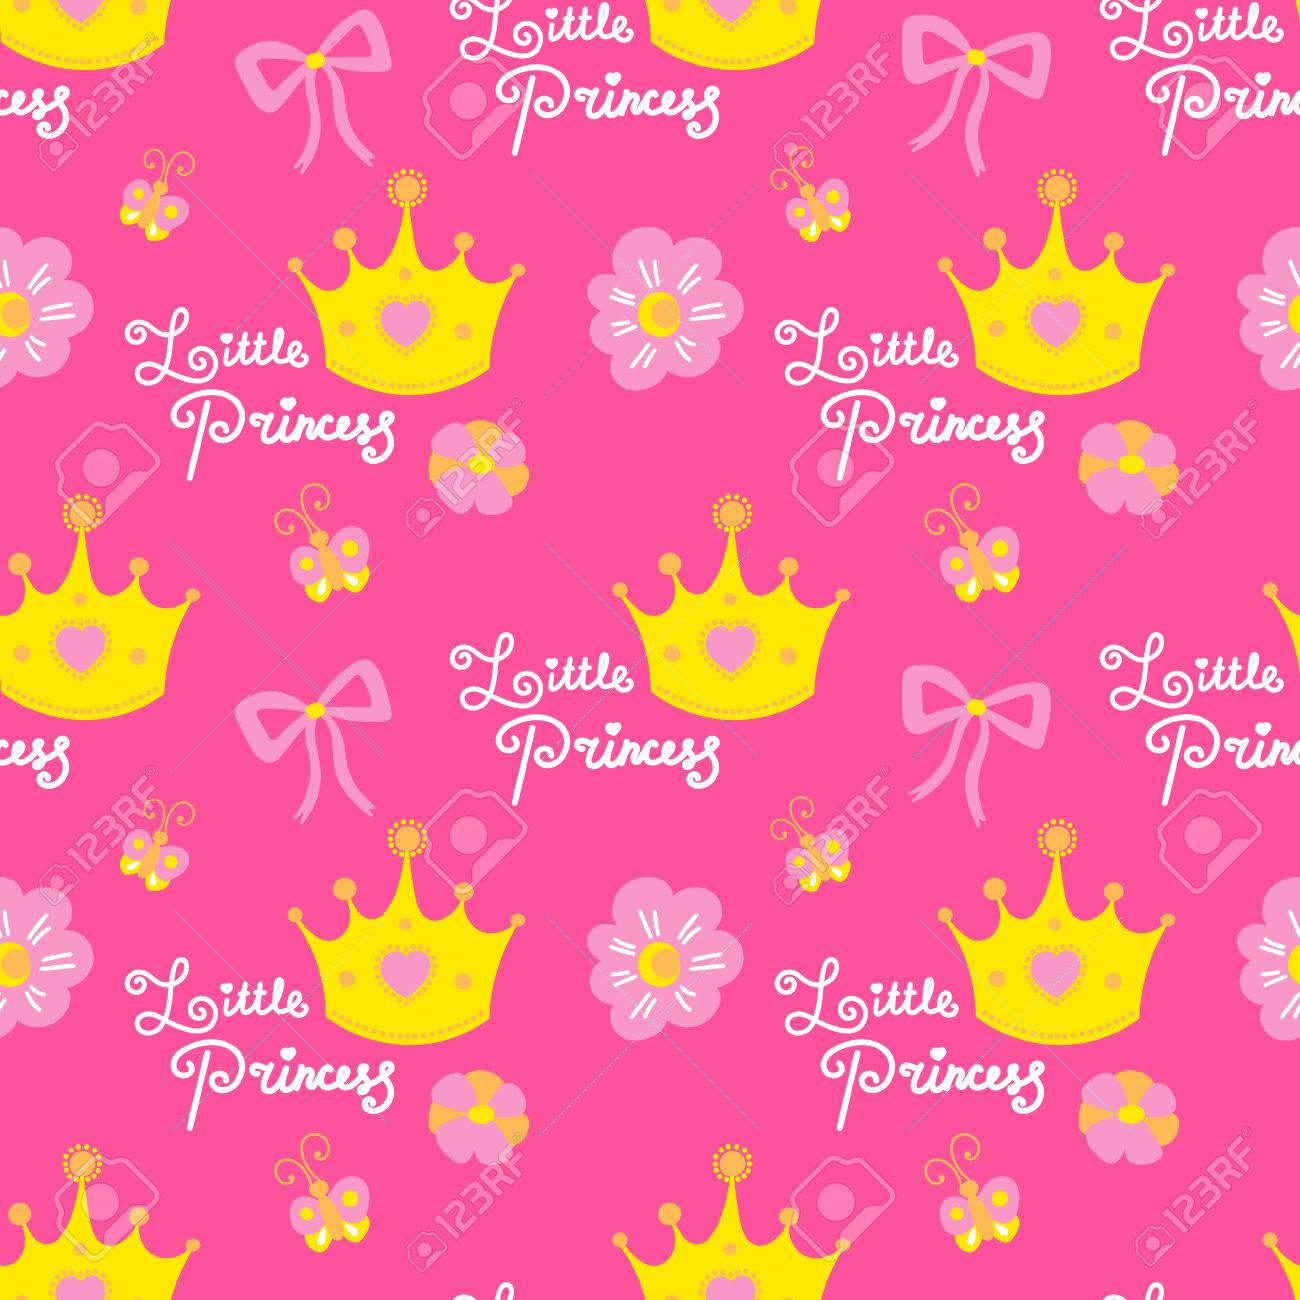 birthday wallpaper for baby ; 75733269-little-princess-pattern-vector-pink-girl-background-for-children-birthday-card-baby-shower-invitatio